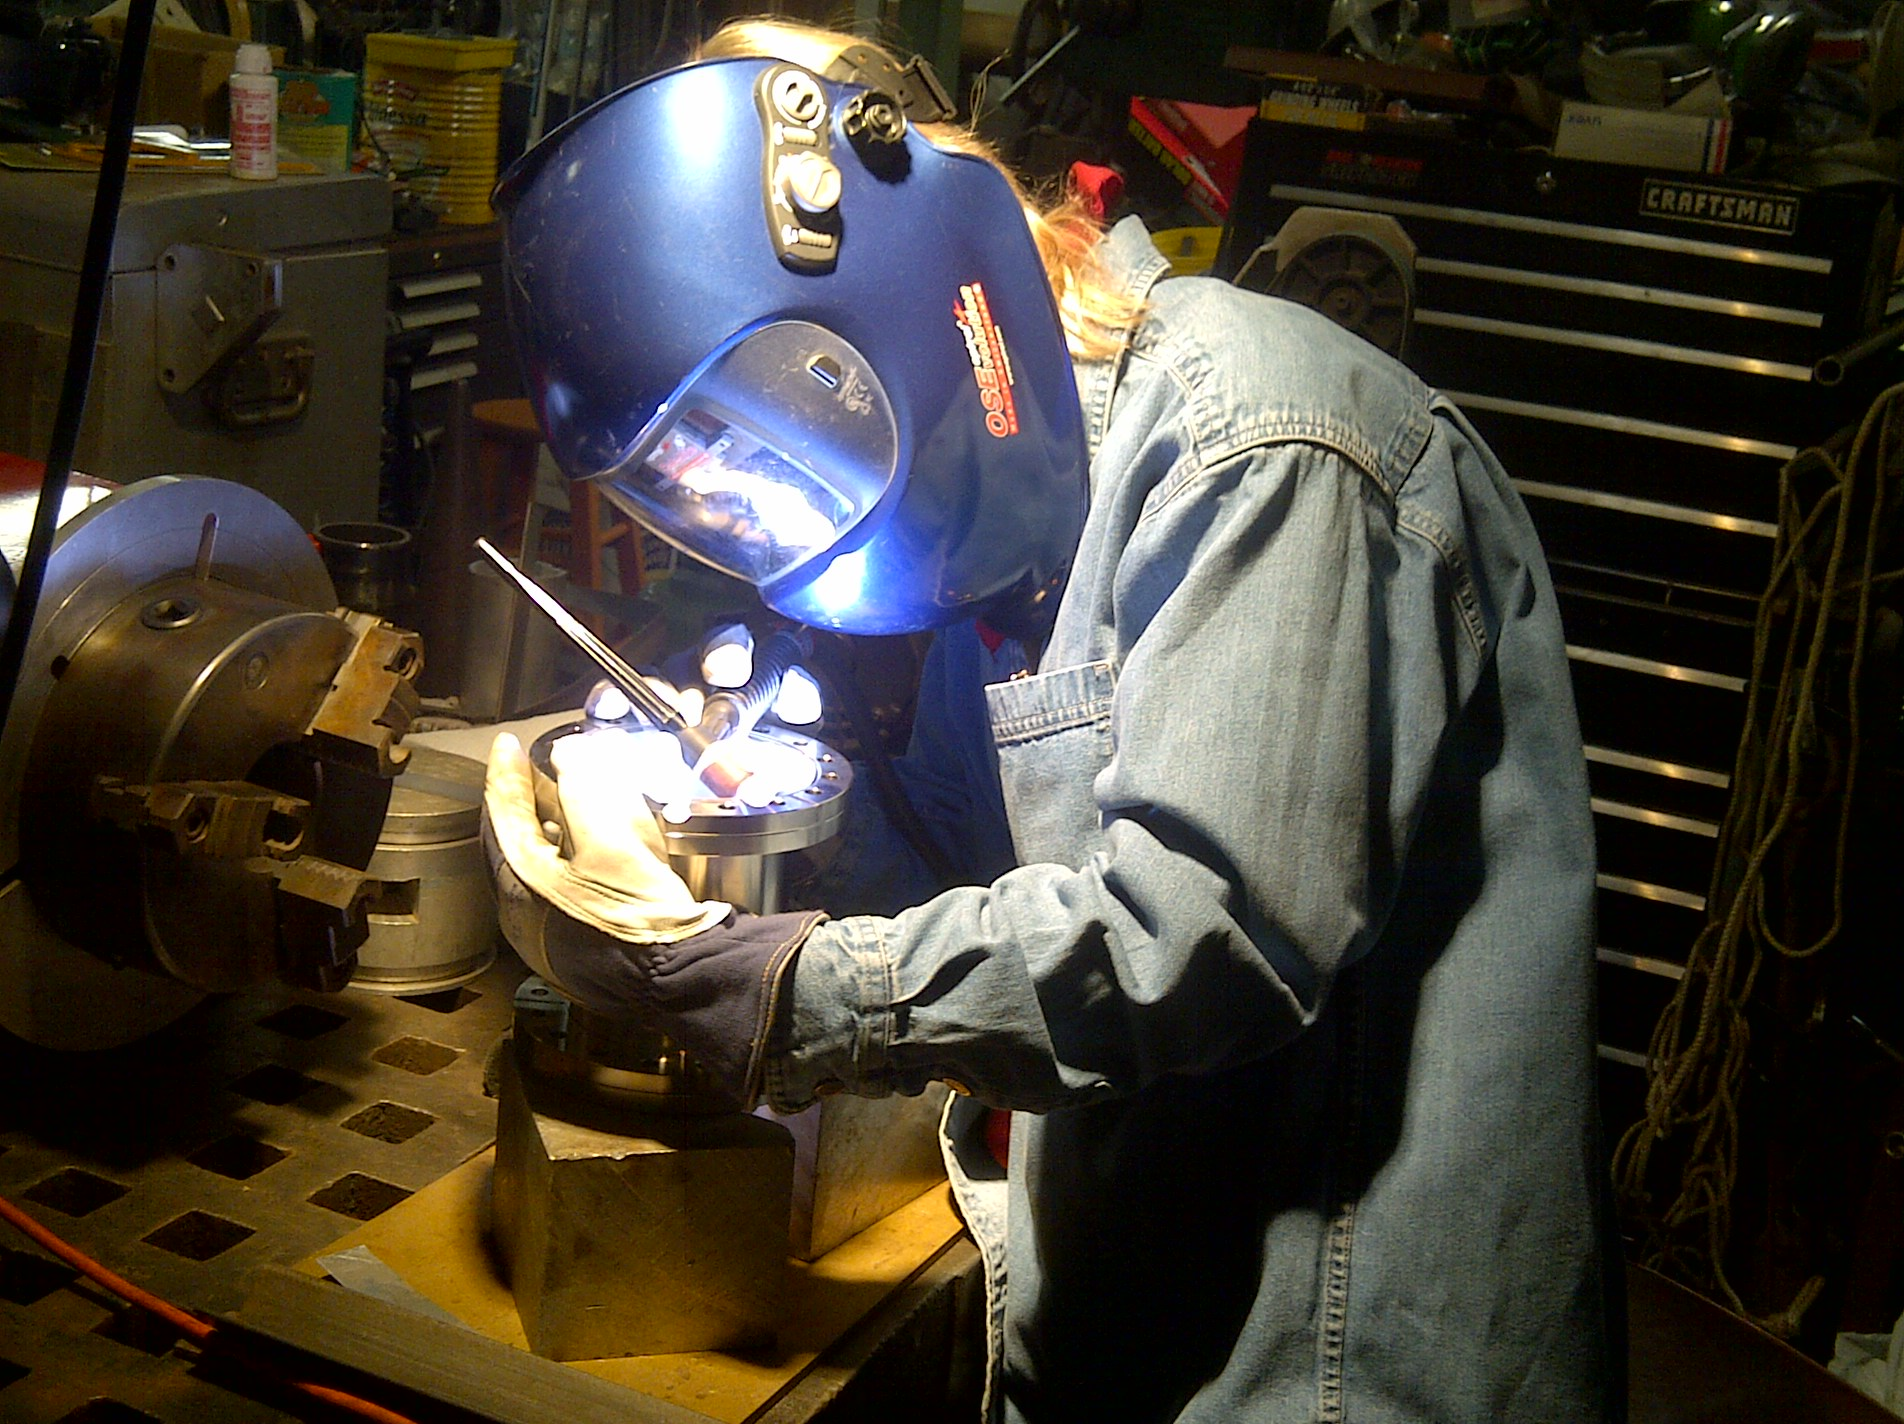 Welding a flange onto a stainless steel vessel